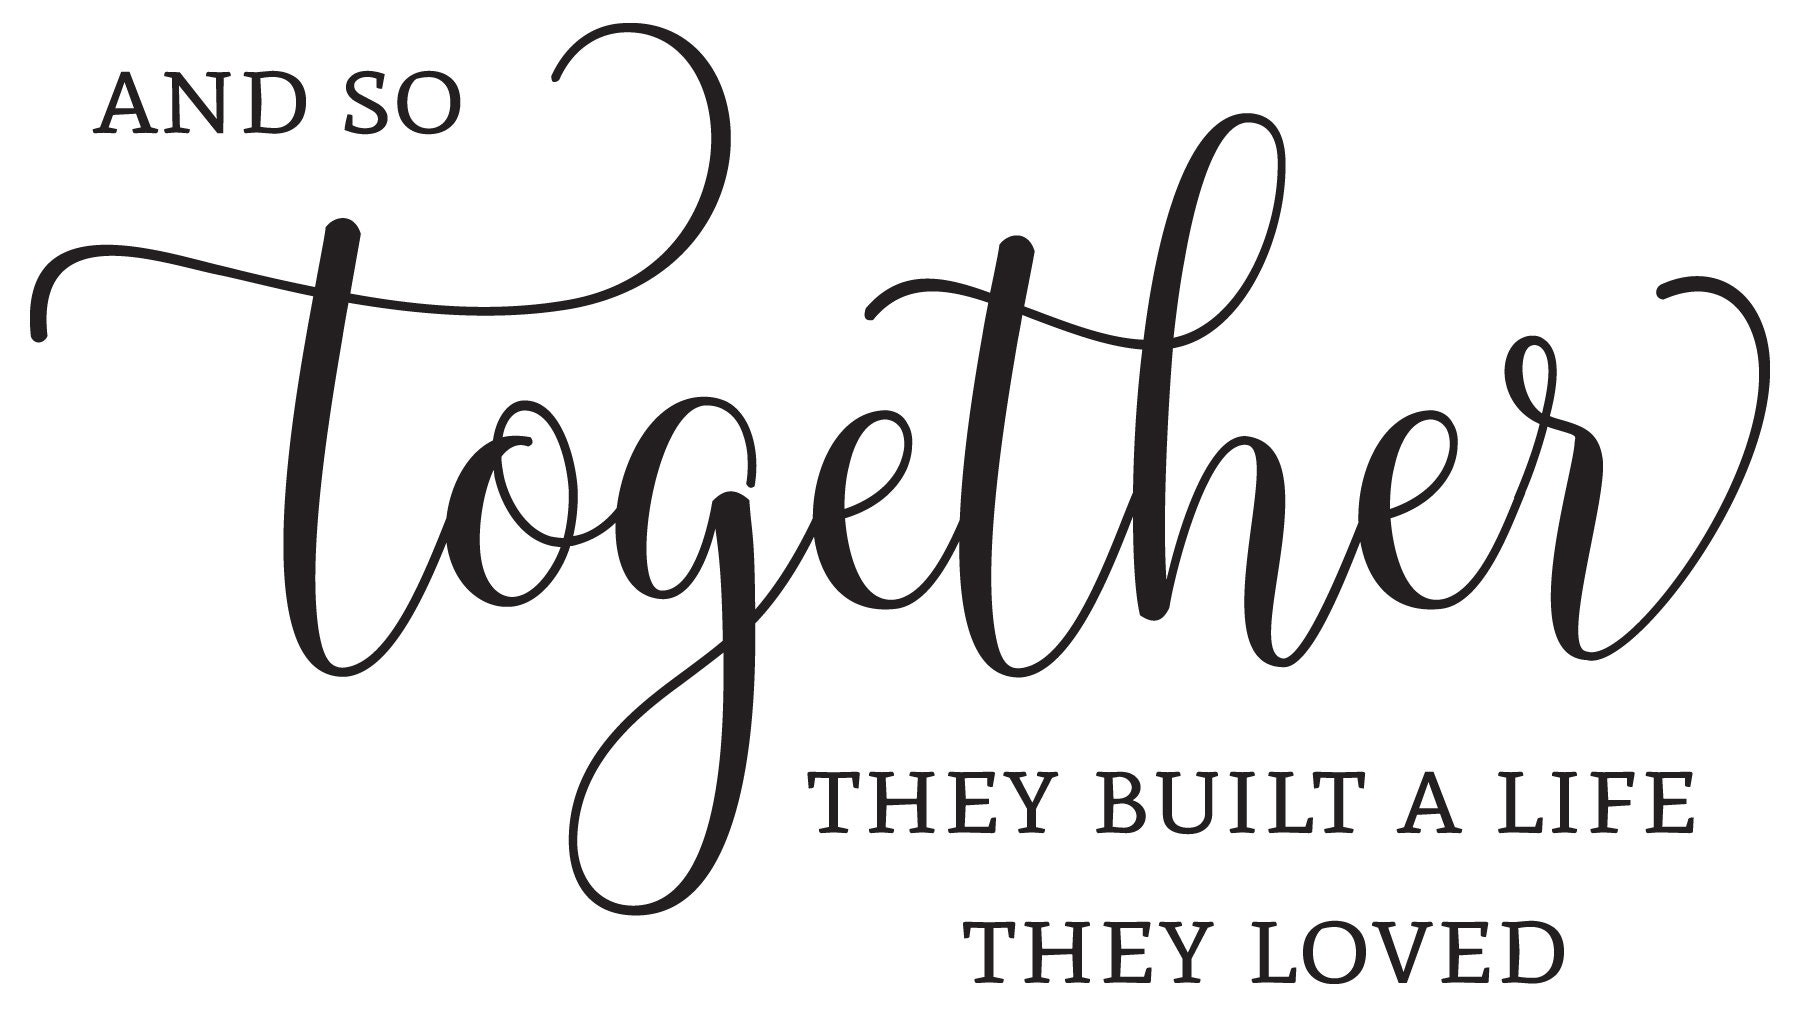 Vinyl Wall Art Decal And So Together They Built A Life They Loved Love Romance Wedding Anniversary Valentine S Day Bedroom Decor